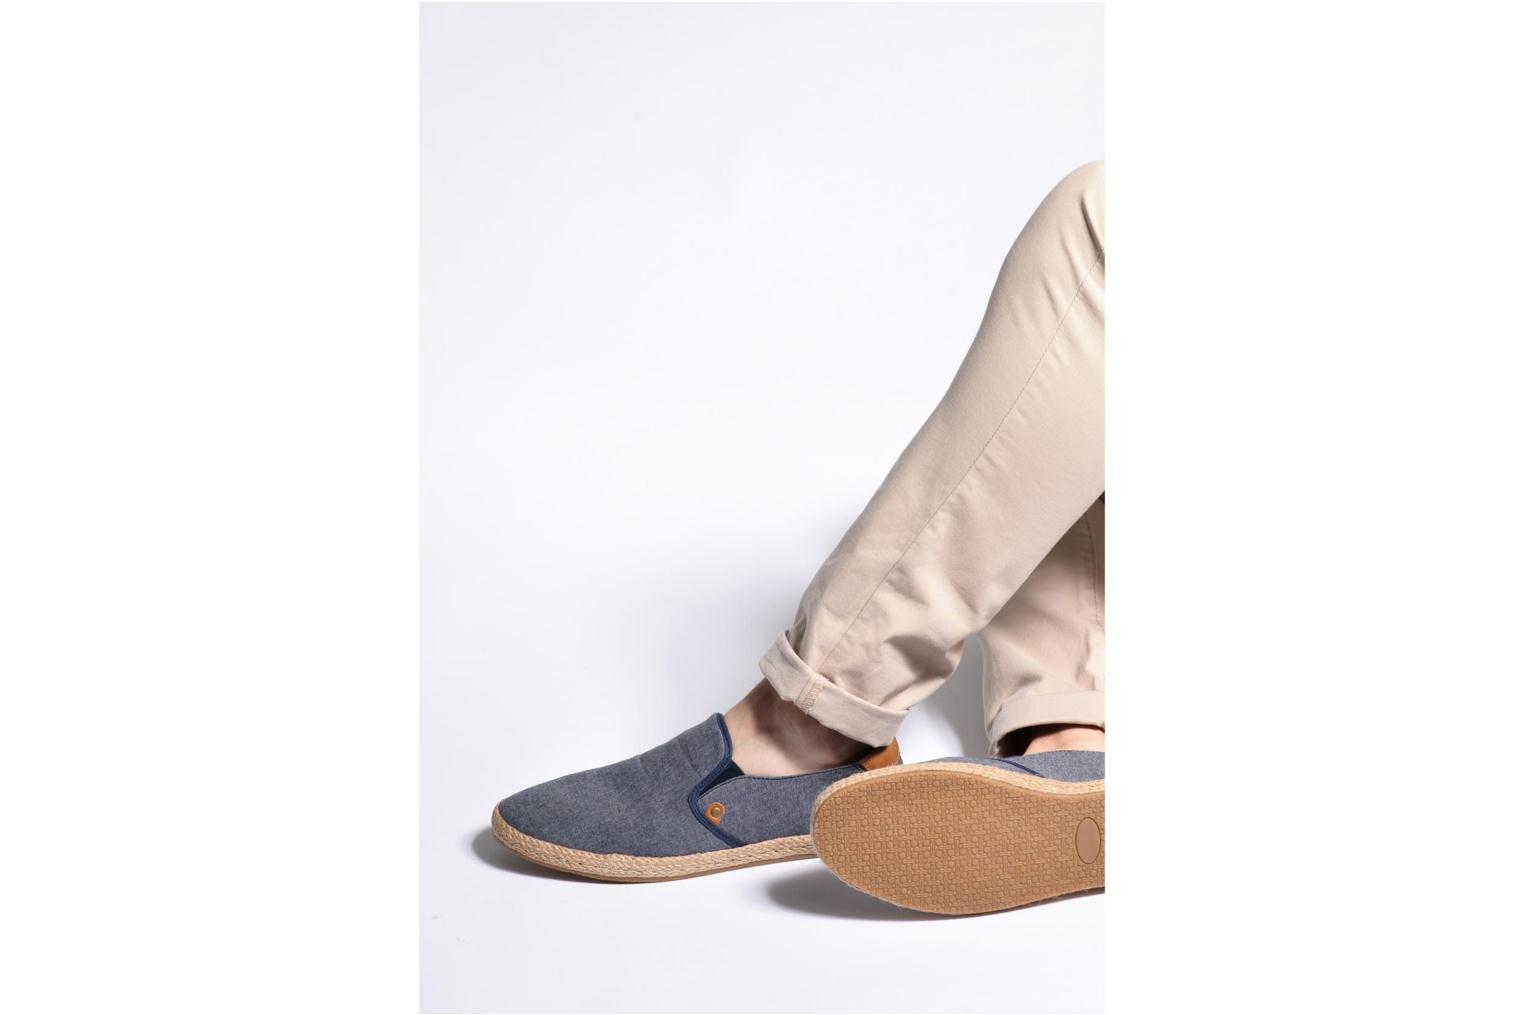 Bleu Bleu Kedrille Shoes I I Love Love I Kedrille Shoes Love vNnOw8m0